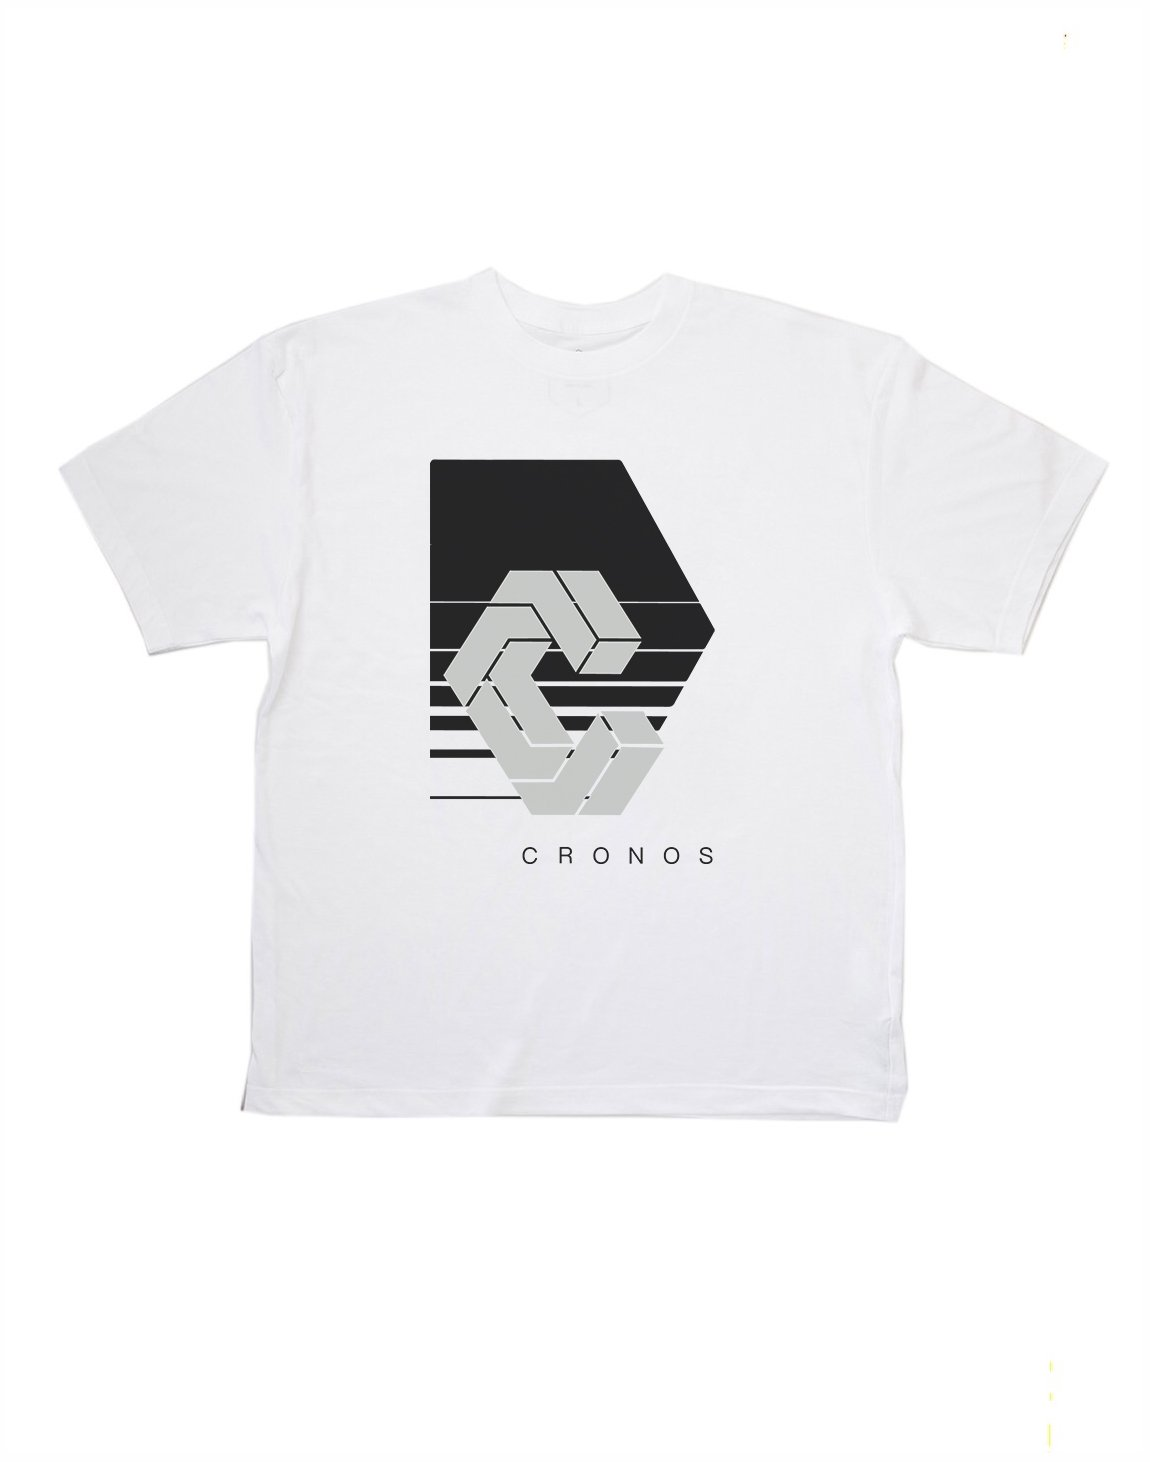 <img class='new_mark_img1' src='https://img.shop-pro.jp/img/new/icons1.gif' style='border:none;display:inline;margin:0px;padding:0px;width:auto;' />CRONOS REFLECTION LOGO OVER SIZE T-SHIRTS【WHITE】